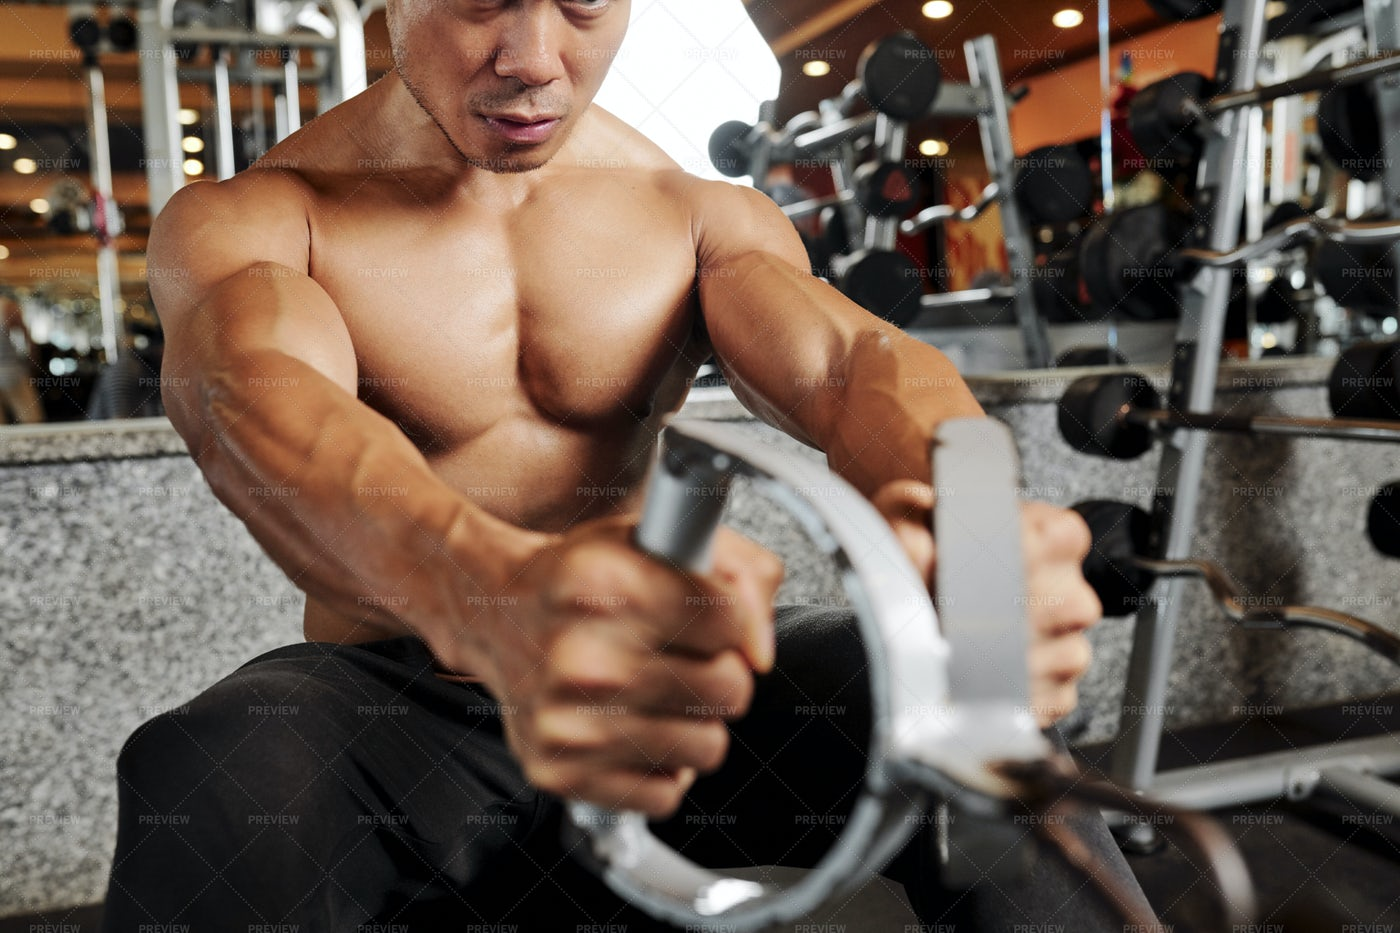 Man Building Muscles In Gym: Stock Photos